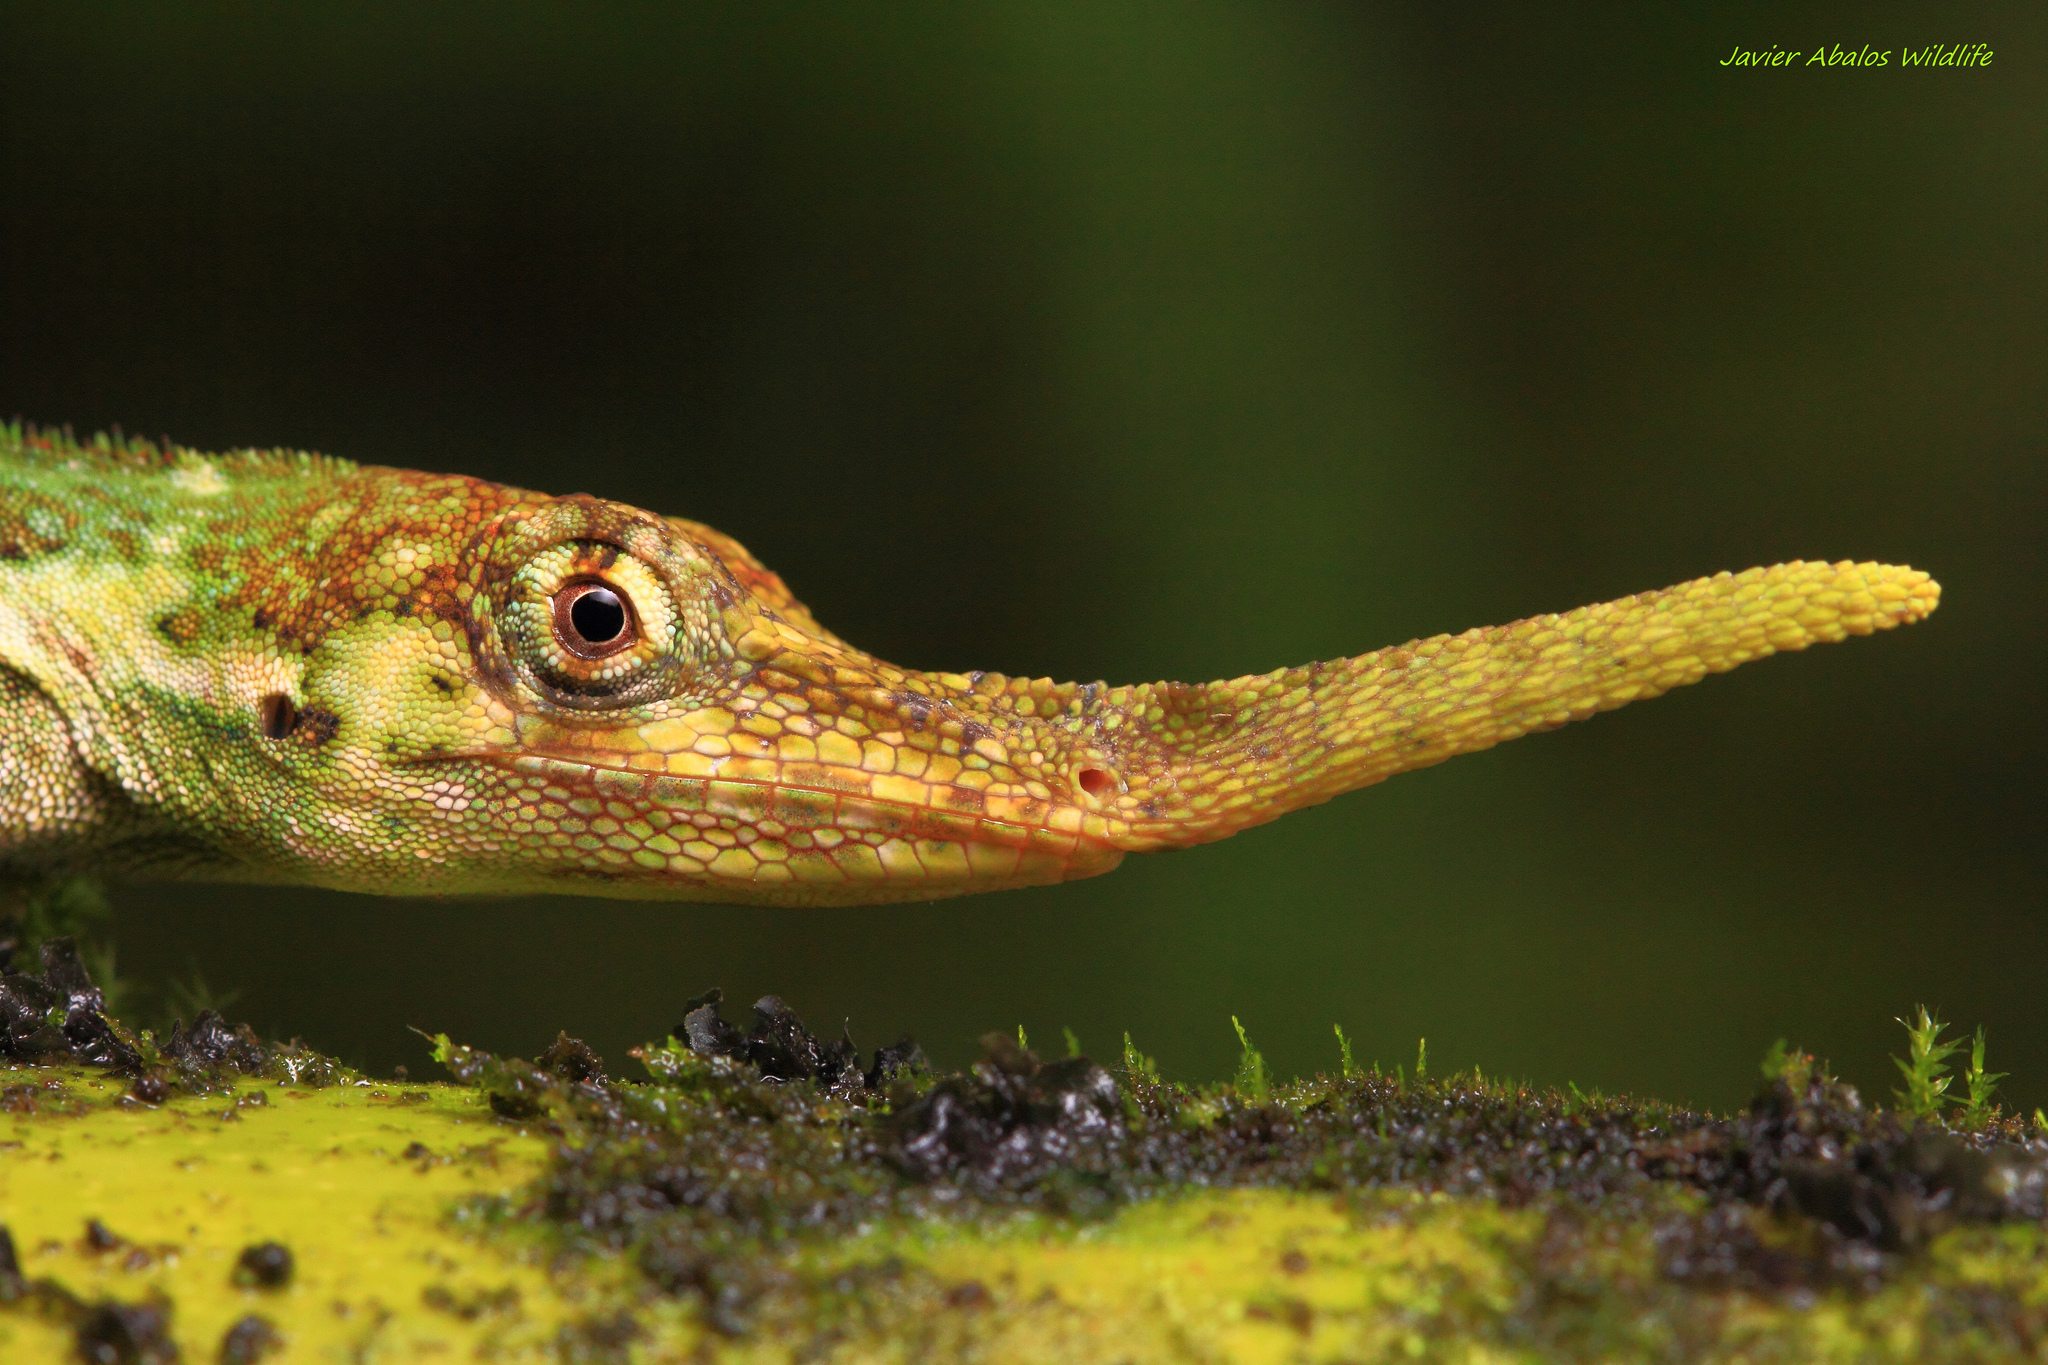 The Pinocchio anole lizard (Anolis probiscis) was first described in Ecuador in 1953, then believed to have become extinct until it was rediscovered in 2005. - Image Credit:  Javier Abalos Alvarez/Flickr ,  CC BY-SA